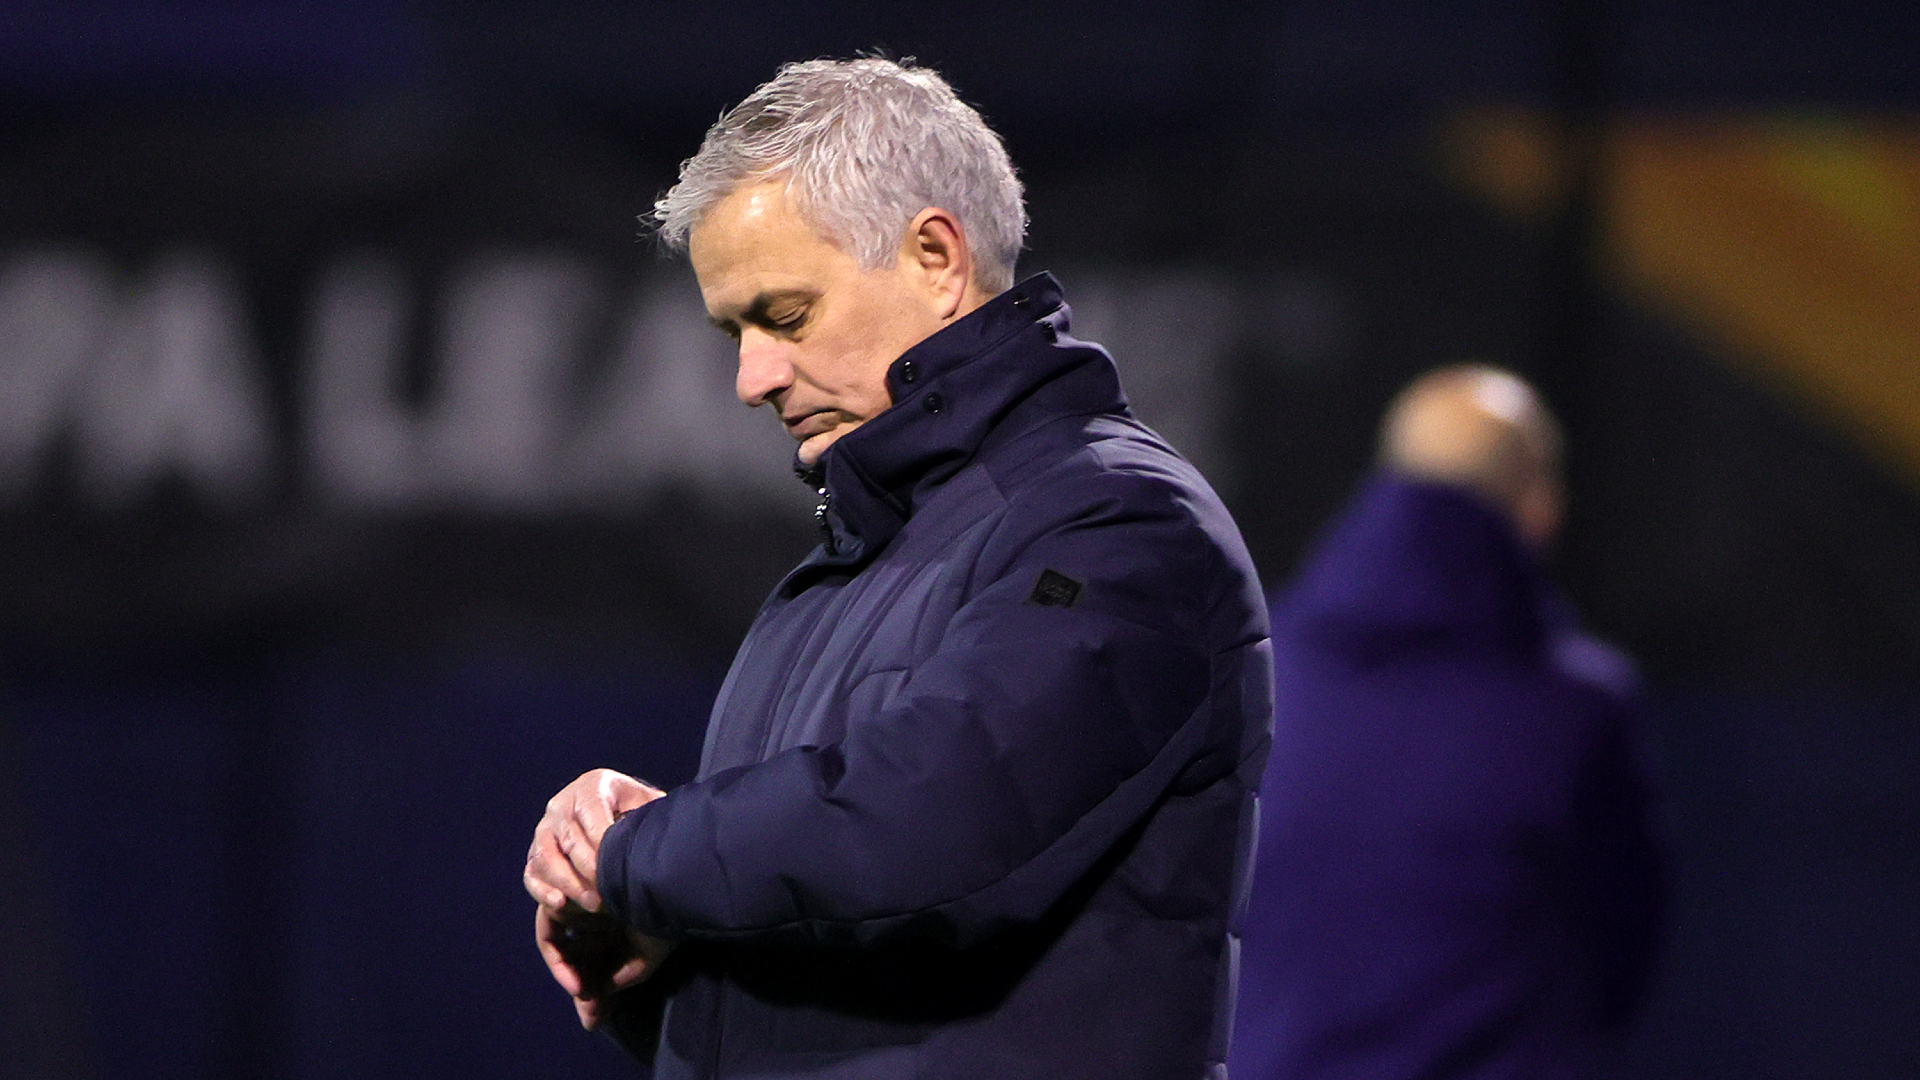 Mourinho 'concerned' by Tottenham players ignoring his instructions